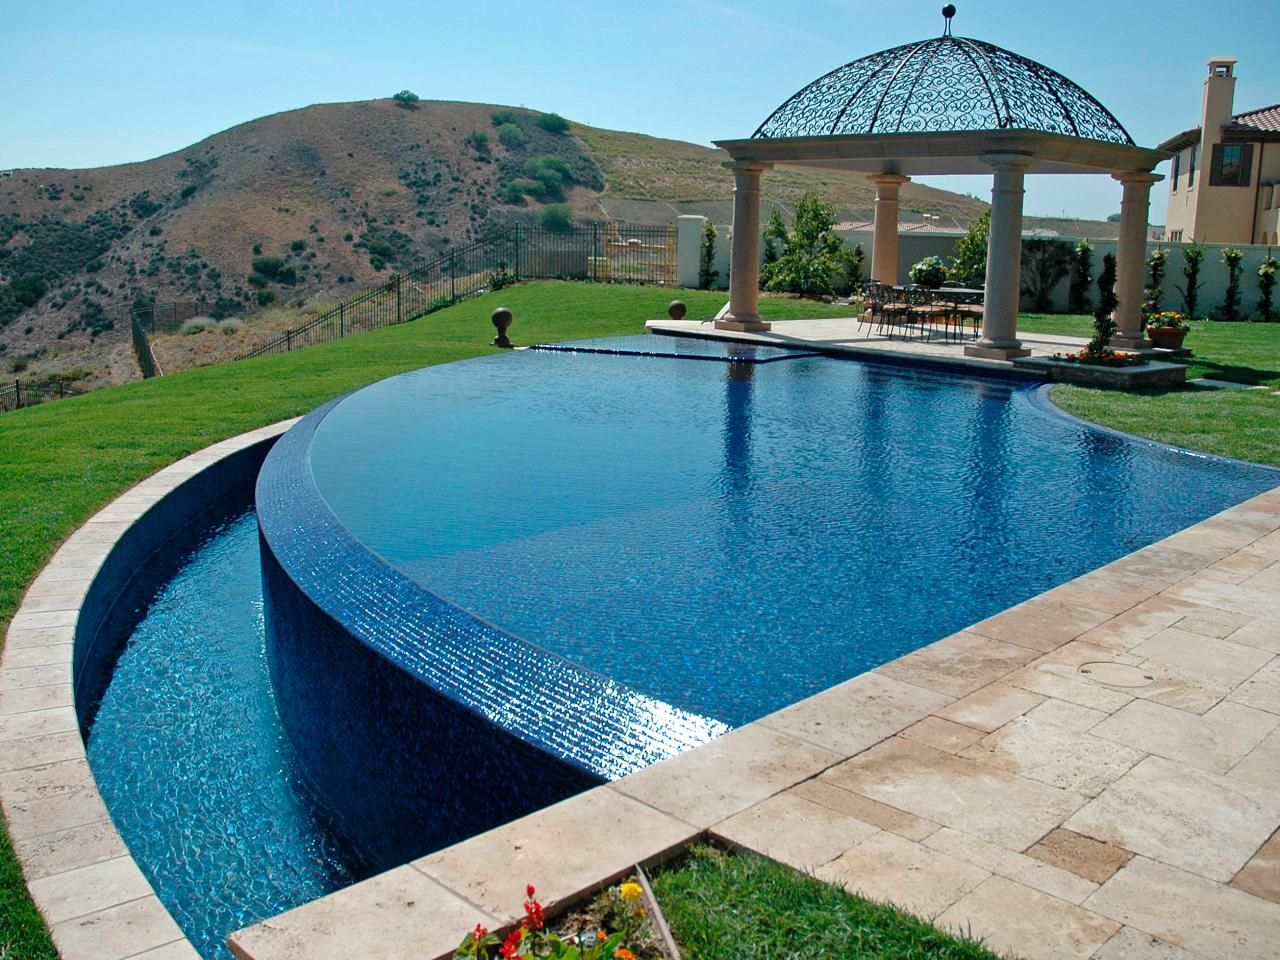 On the Edge Stunning Infinity Pools Pool designs Hgtv and